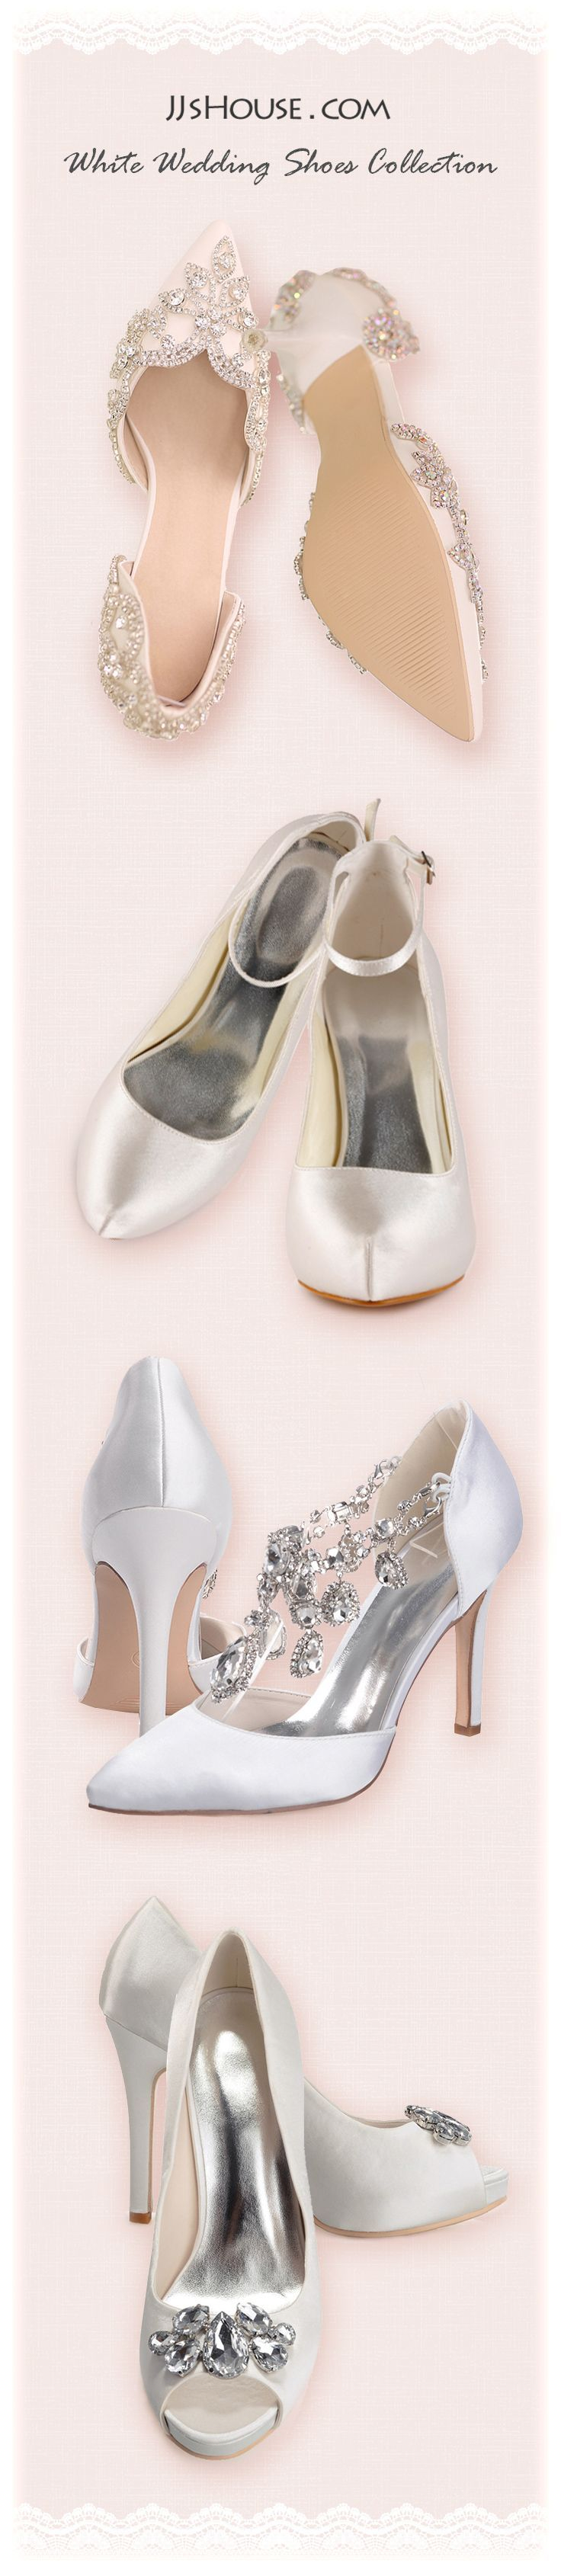 Classic White Wedding Shoes That You Will Never Want To Take Off! #JJsHouse  | Wedding Shoes | Pinterest | Wedding Shoes, Classic White And Weddings